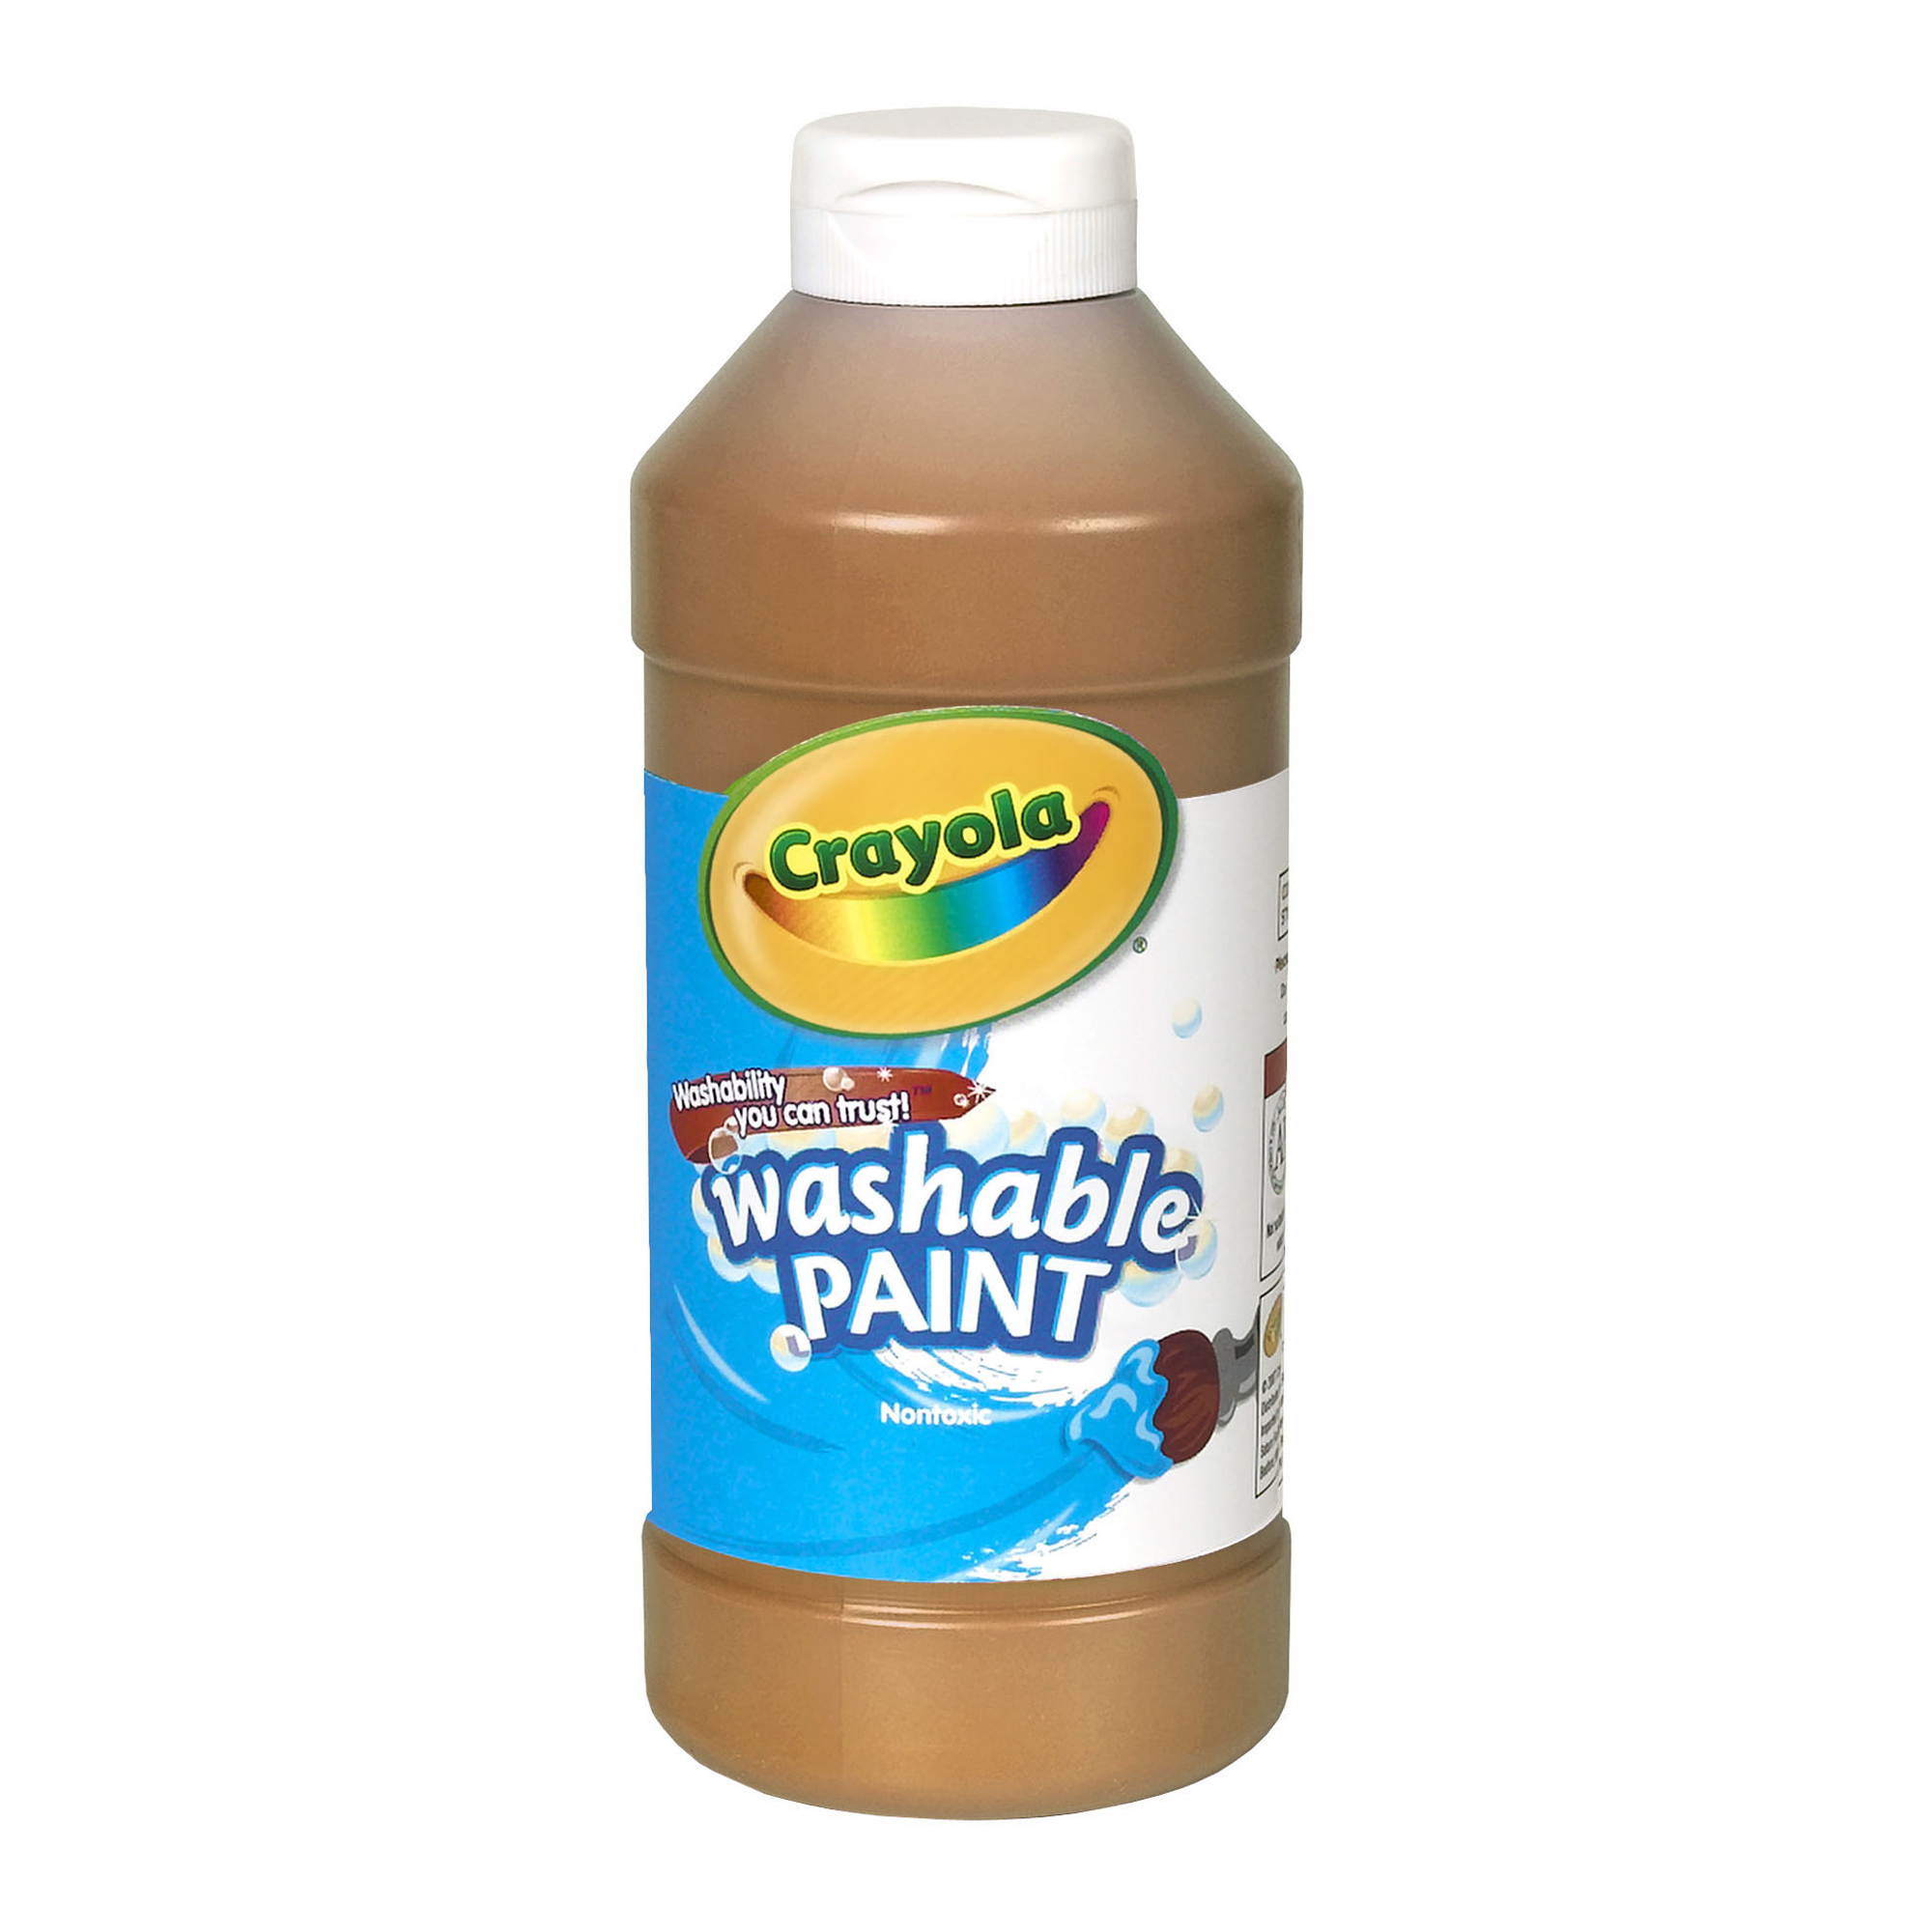 Crayola® Washable Paint, Brown, 16 oz., Set of 6 bottles